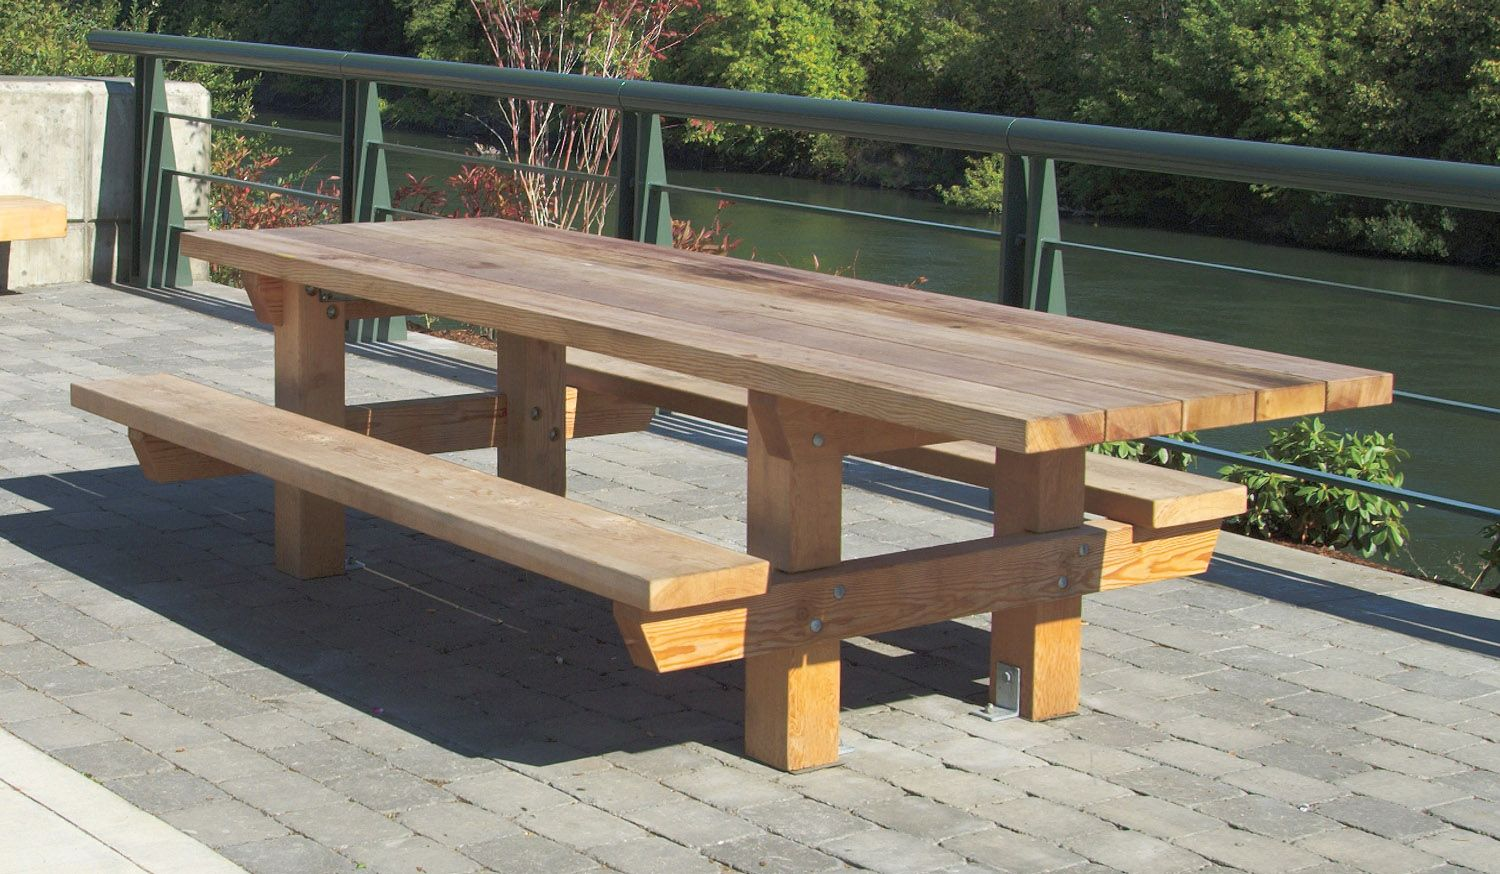 Picnic table designs 2167 accessible picnic table with for Table design outdoor